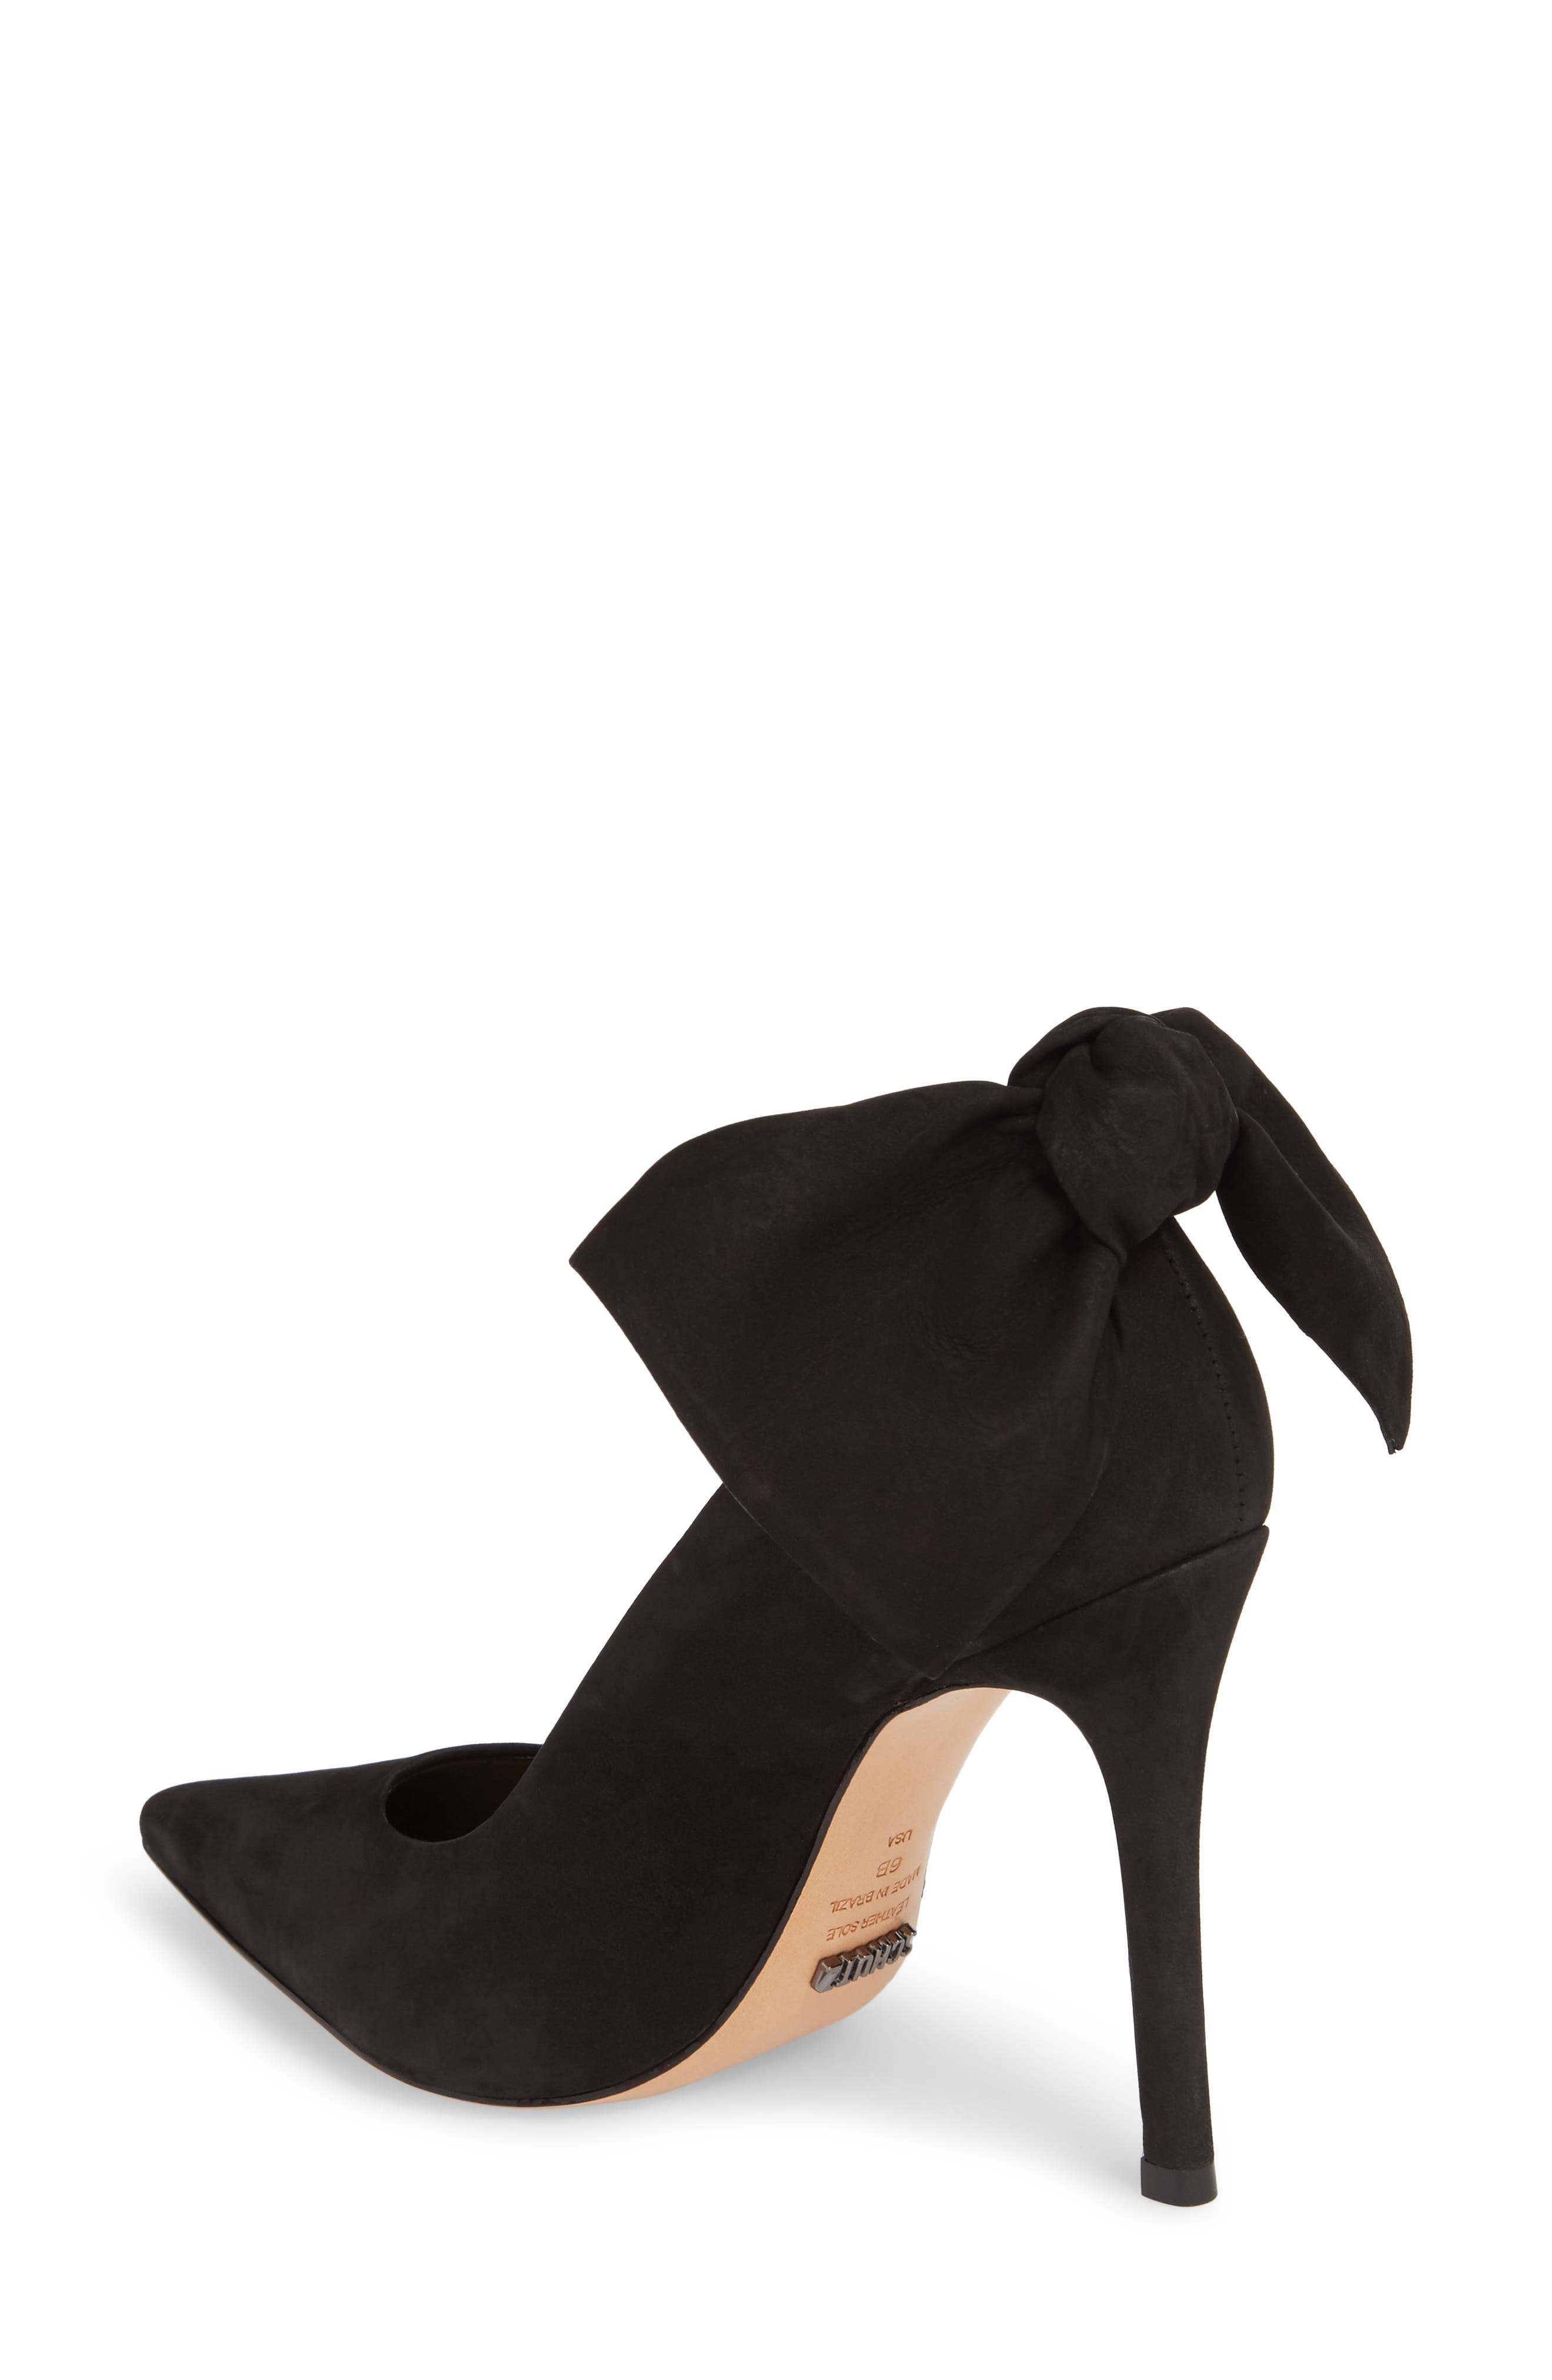 SCHUTZ,                             Blasiana Bow Pump,                             Alternate thumbnail 2, color,                             001